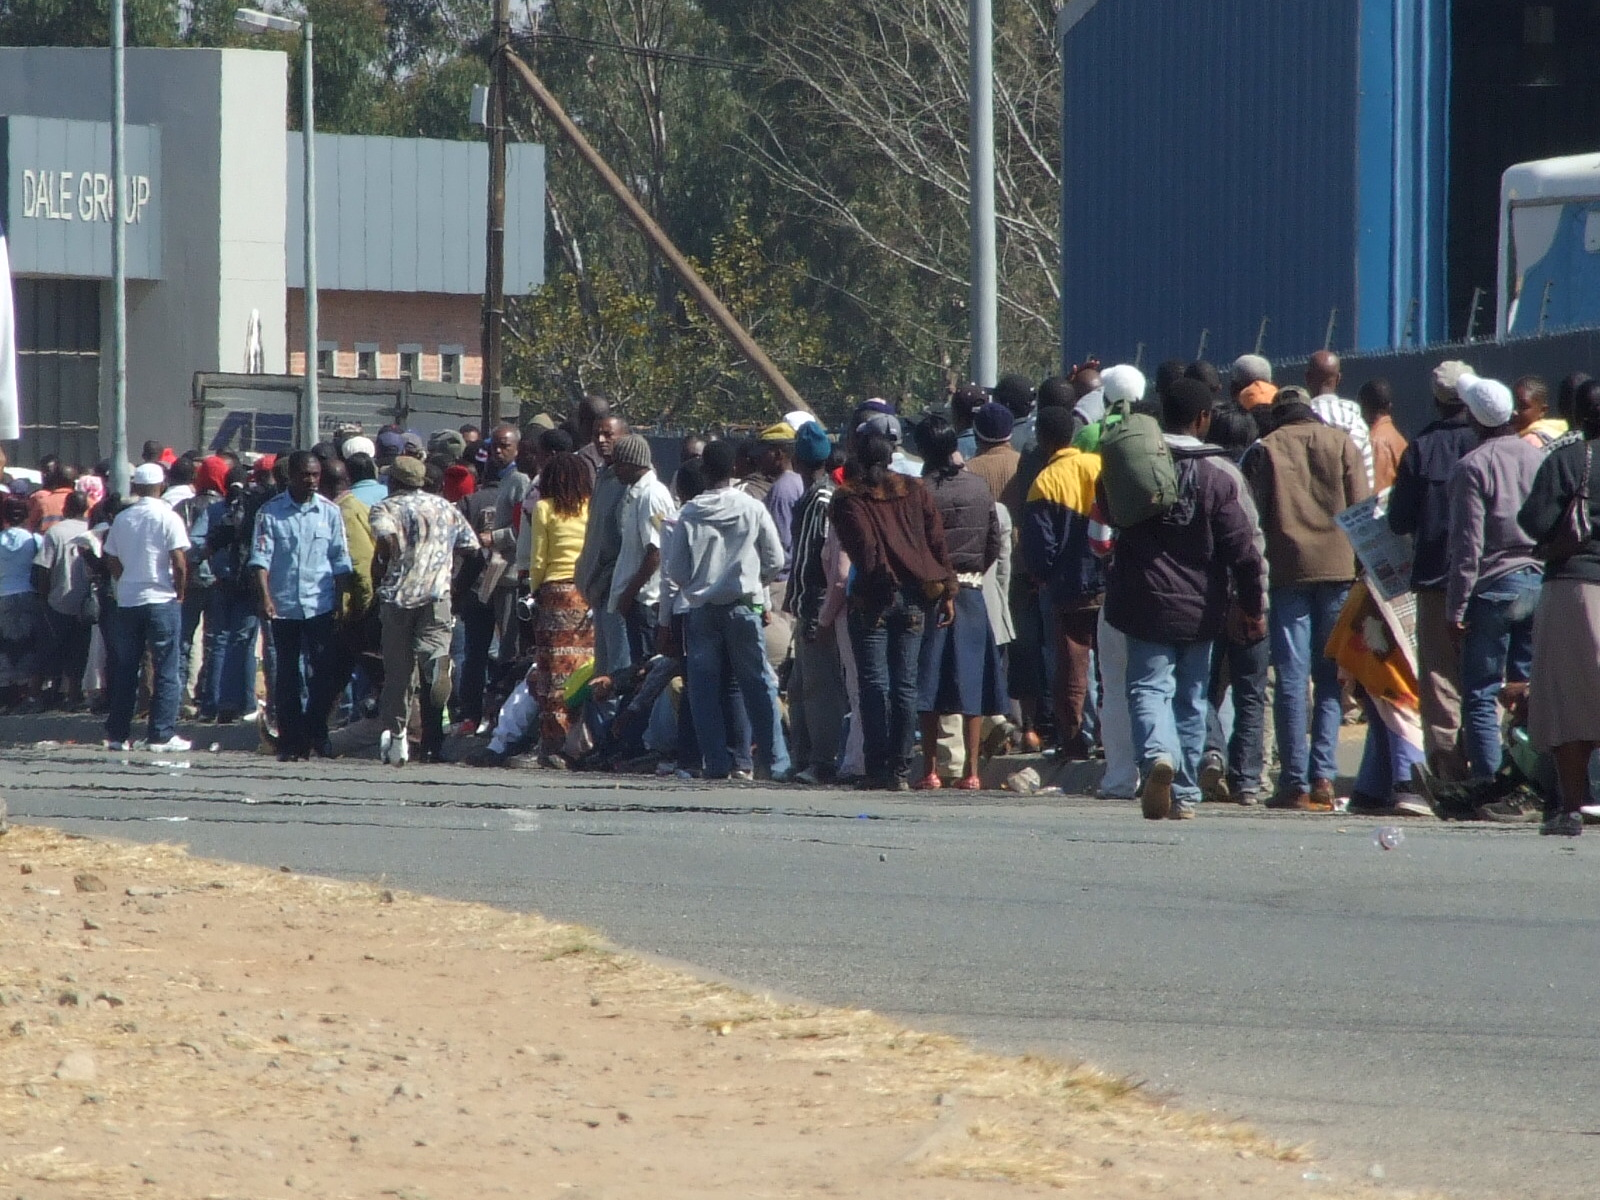 A queue of Southern Africans stretches down the street outside Crown Mines Asylum Determination Centre in Johannesburg.